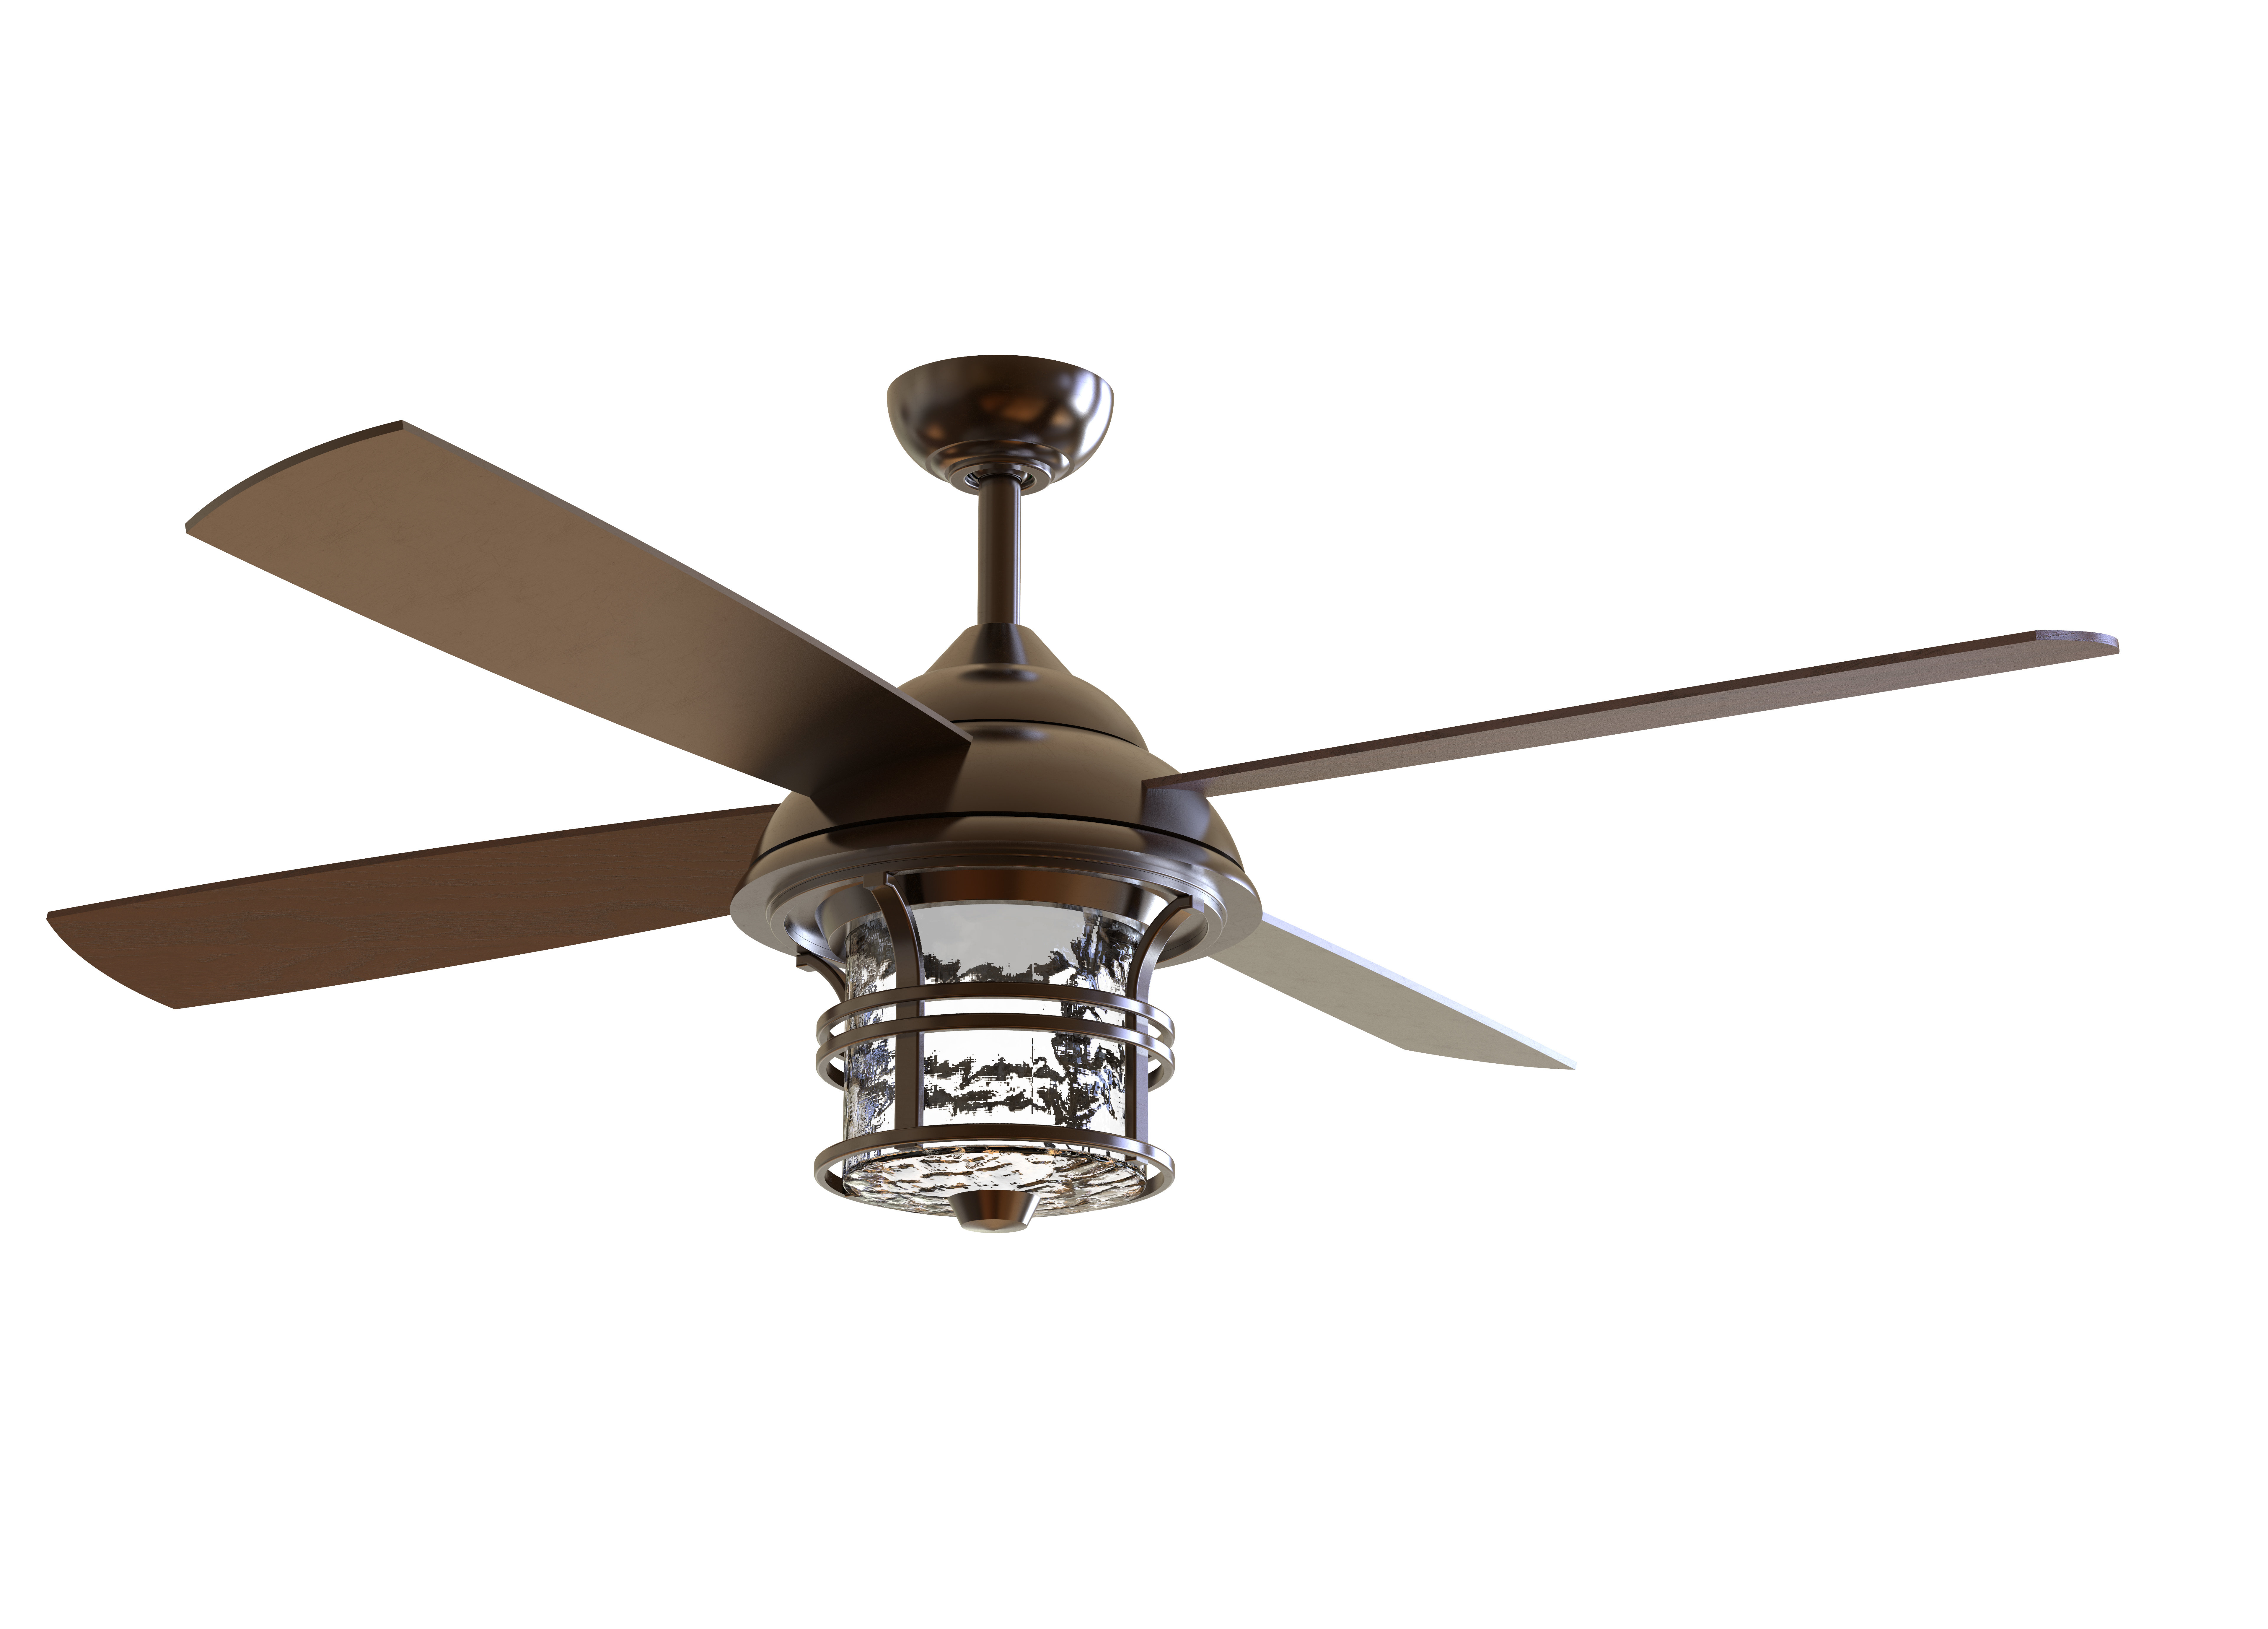 """Acero Retro 3 Blade Led Ceiling Fans Inside Well Known 56"""" Concetta 4 Blade Led Ceiling Fan With Remote, Light Kit Included (View 6 of 20)"""